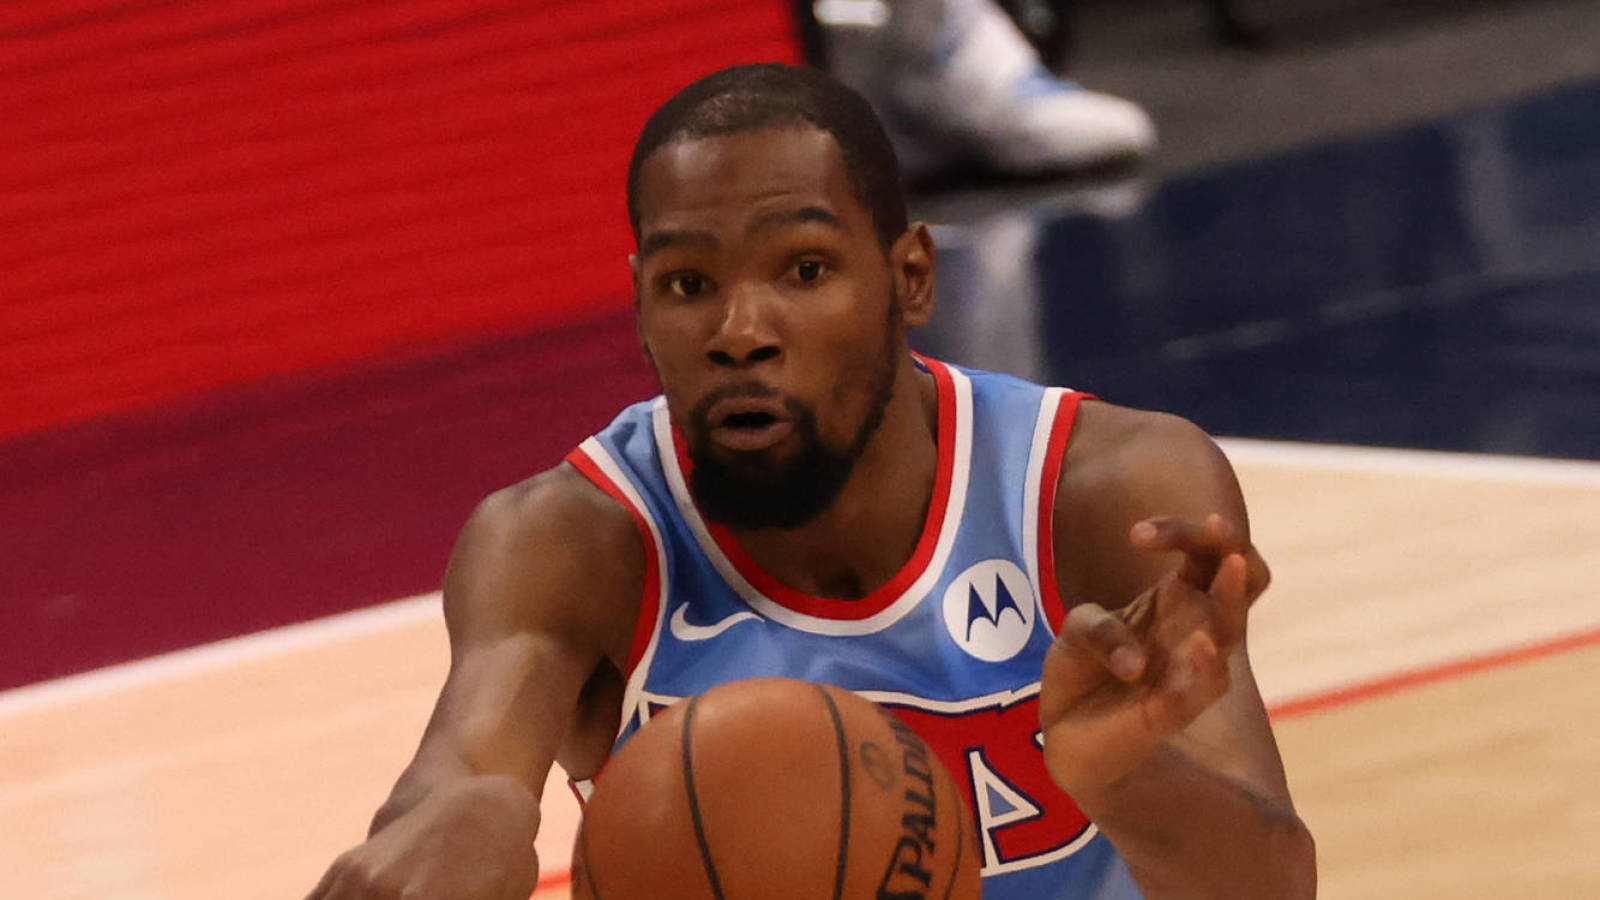 Kevin Durant will stay with the Nets for a four-year, $ 198 million extension